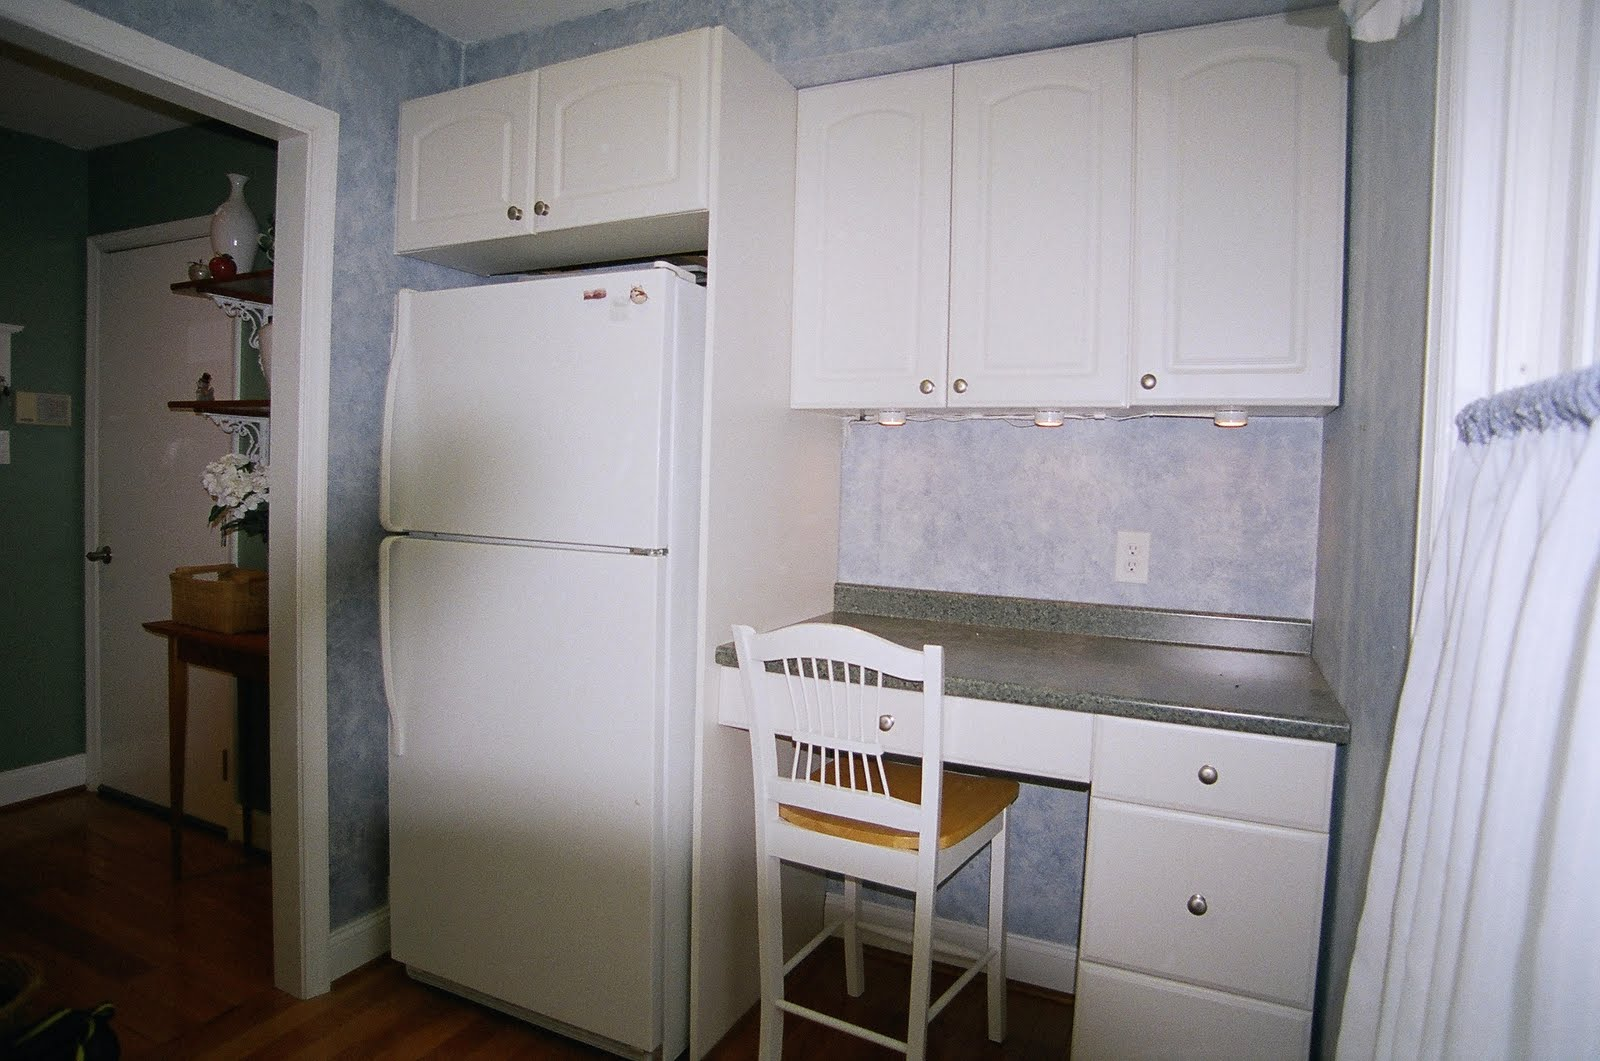 Pantry Cabinet Floor To Ceiling Pantry Cabinet With Pantry Cabinets Design Ideas Pictures